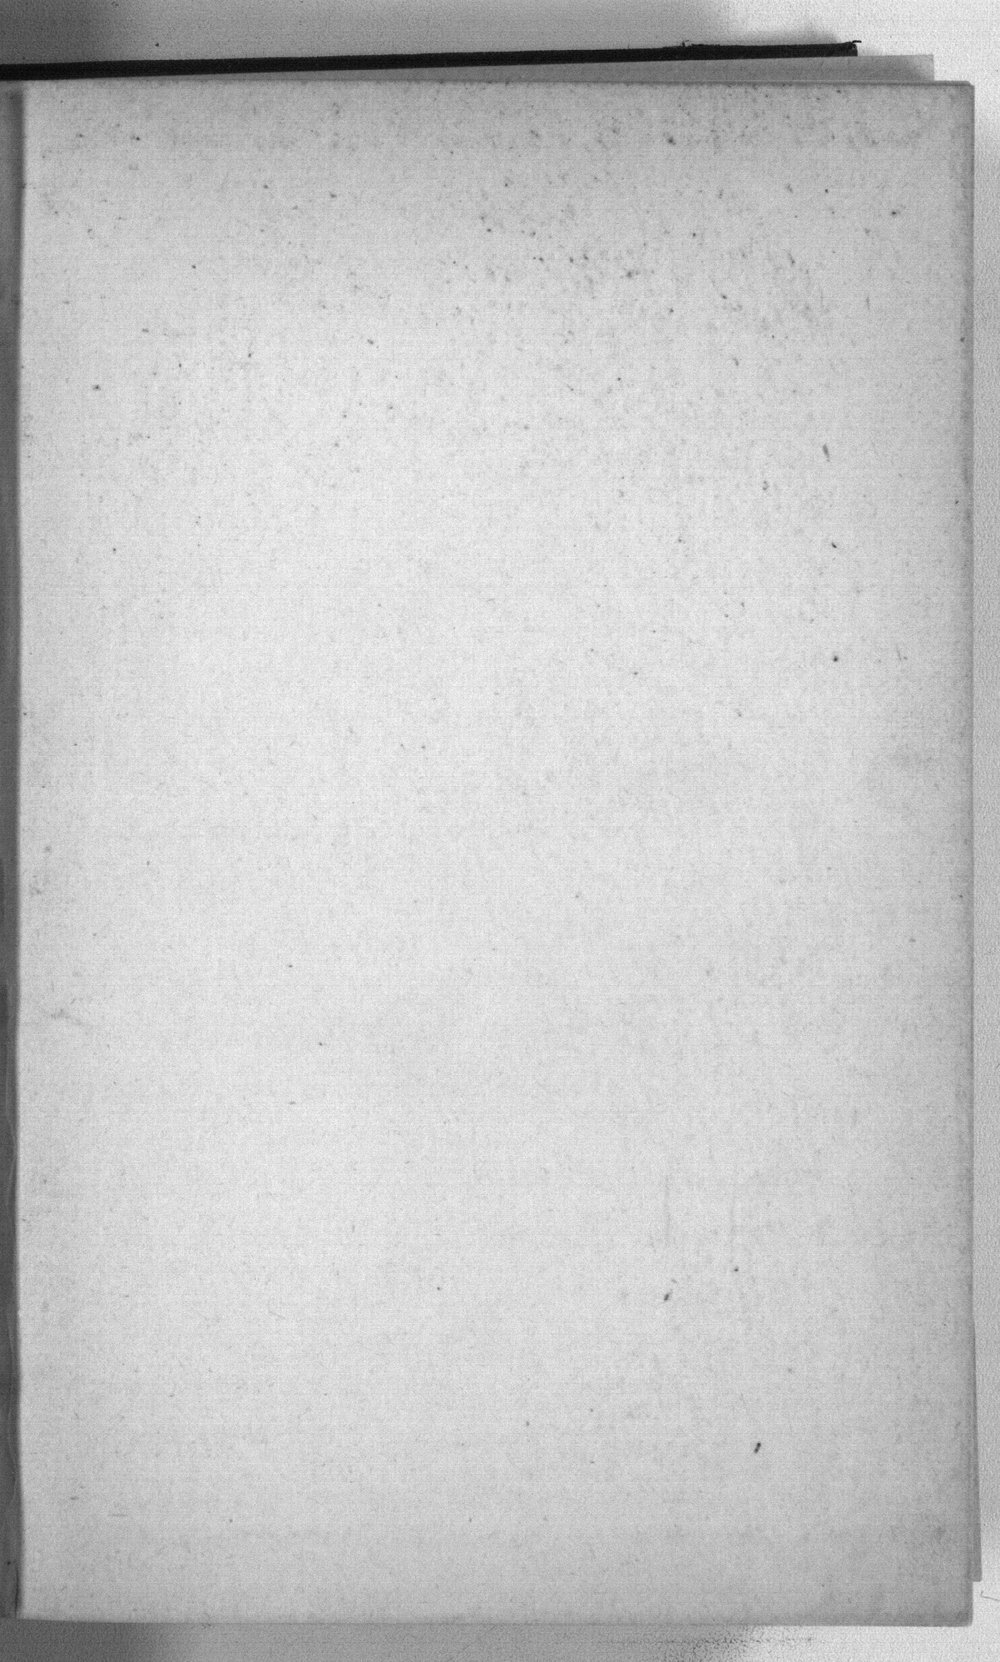 Eighth biennial report of the Kansas State Board of Agriculture, 1891-1892 - blank page